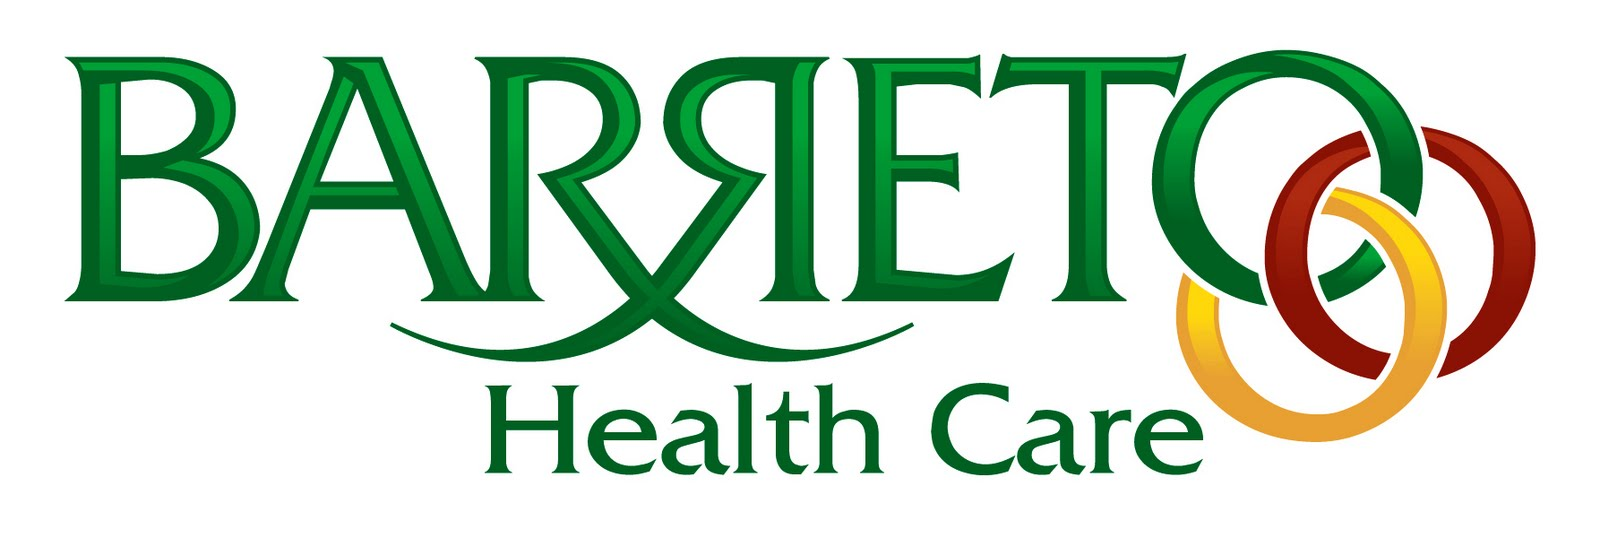 Barreto Health Care